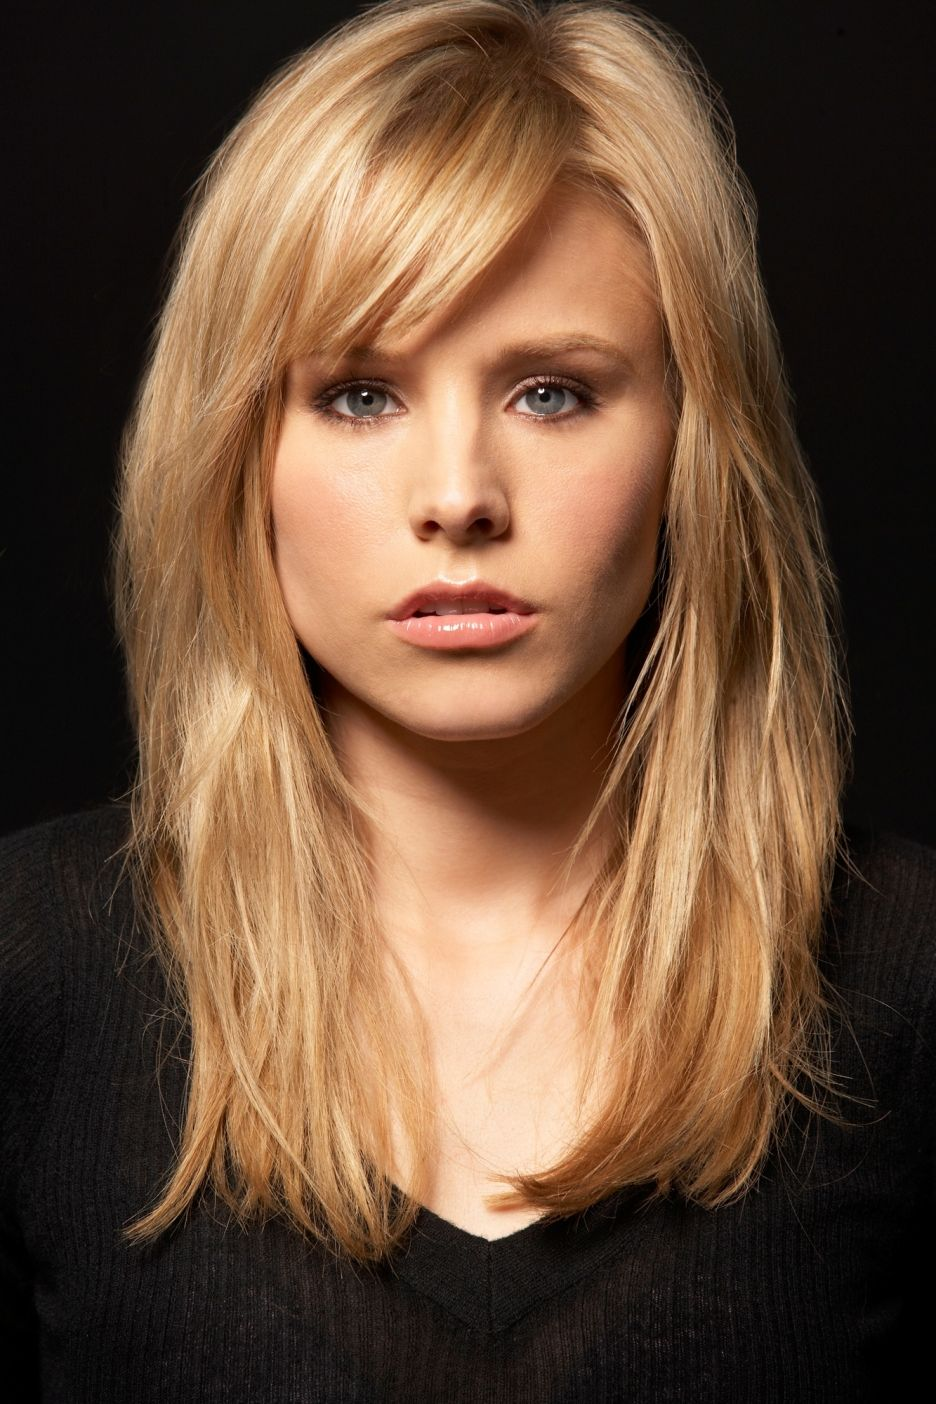 Kristen Bell I Like Her Hair Color And Bangs Dress Me Up